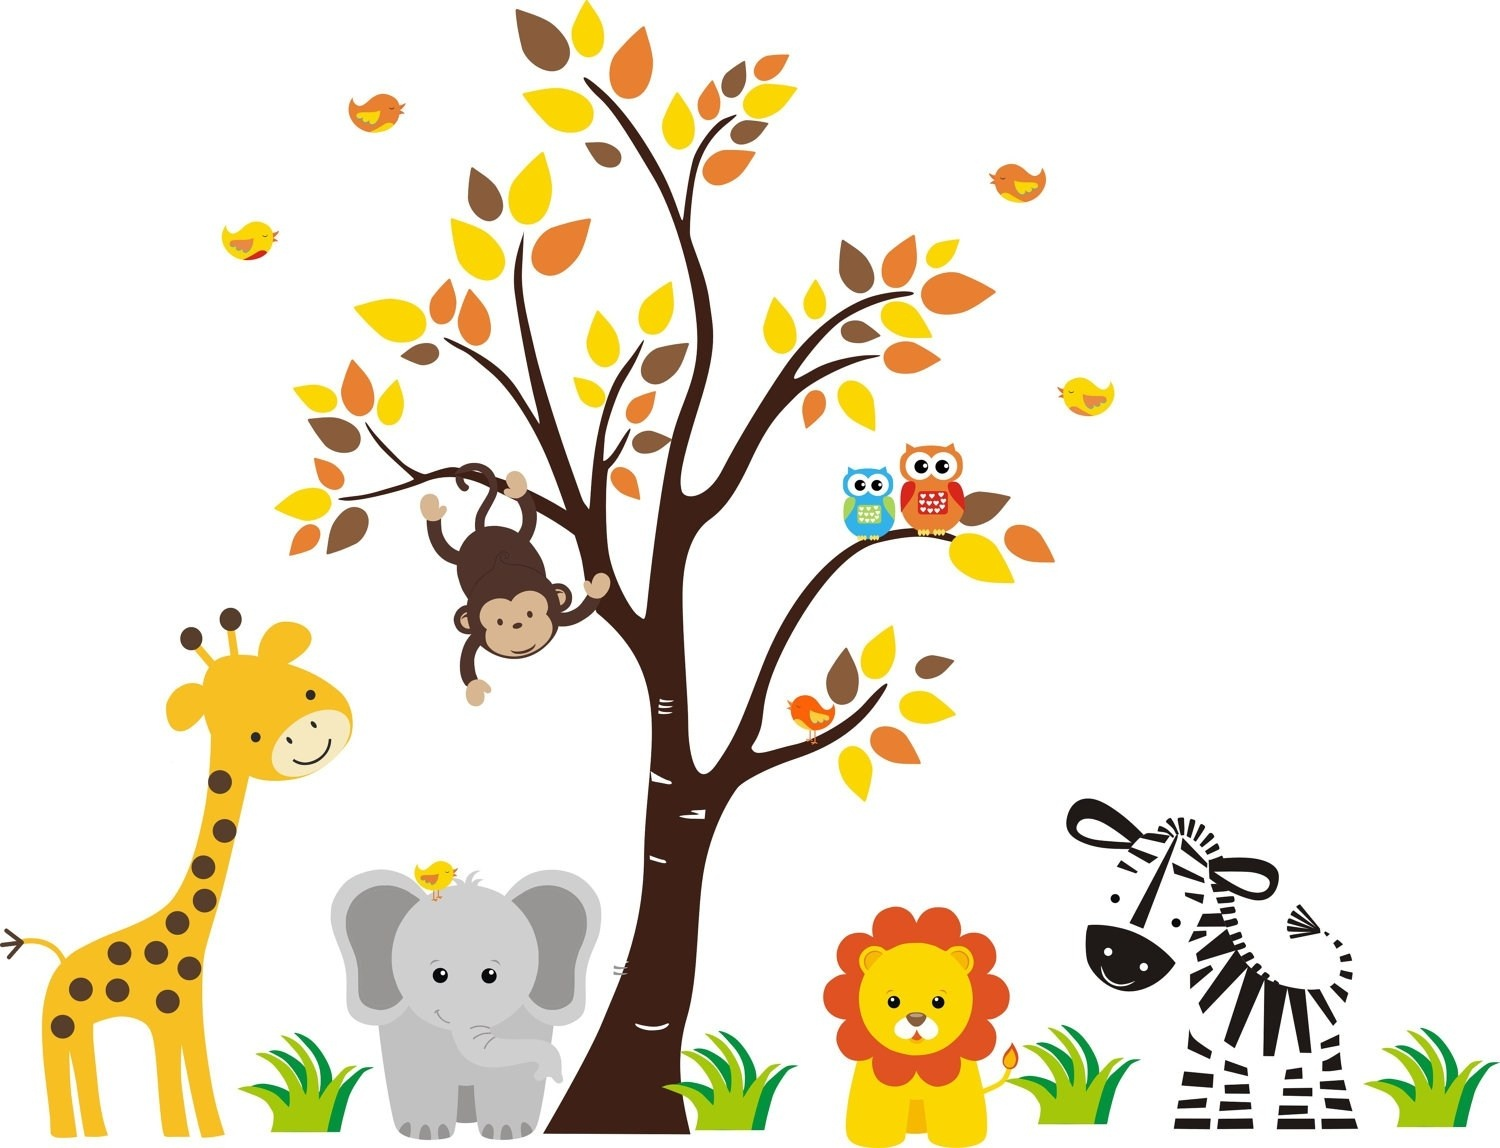 Free Printable Baby Jungle Animal Clipart 8 » Clipart Portal - Free Printable Baby Jungle Animal Clipart